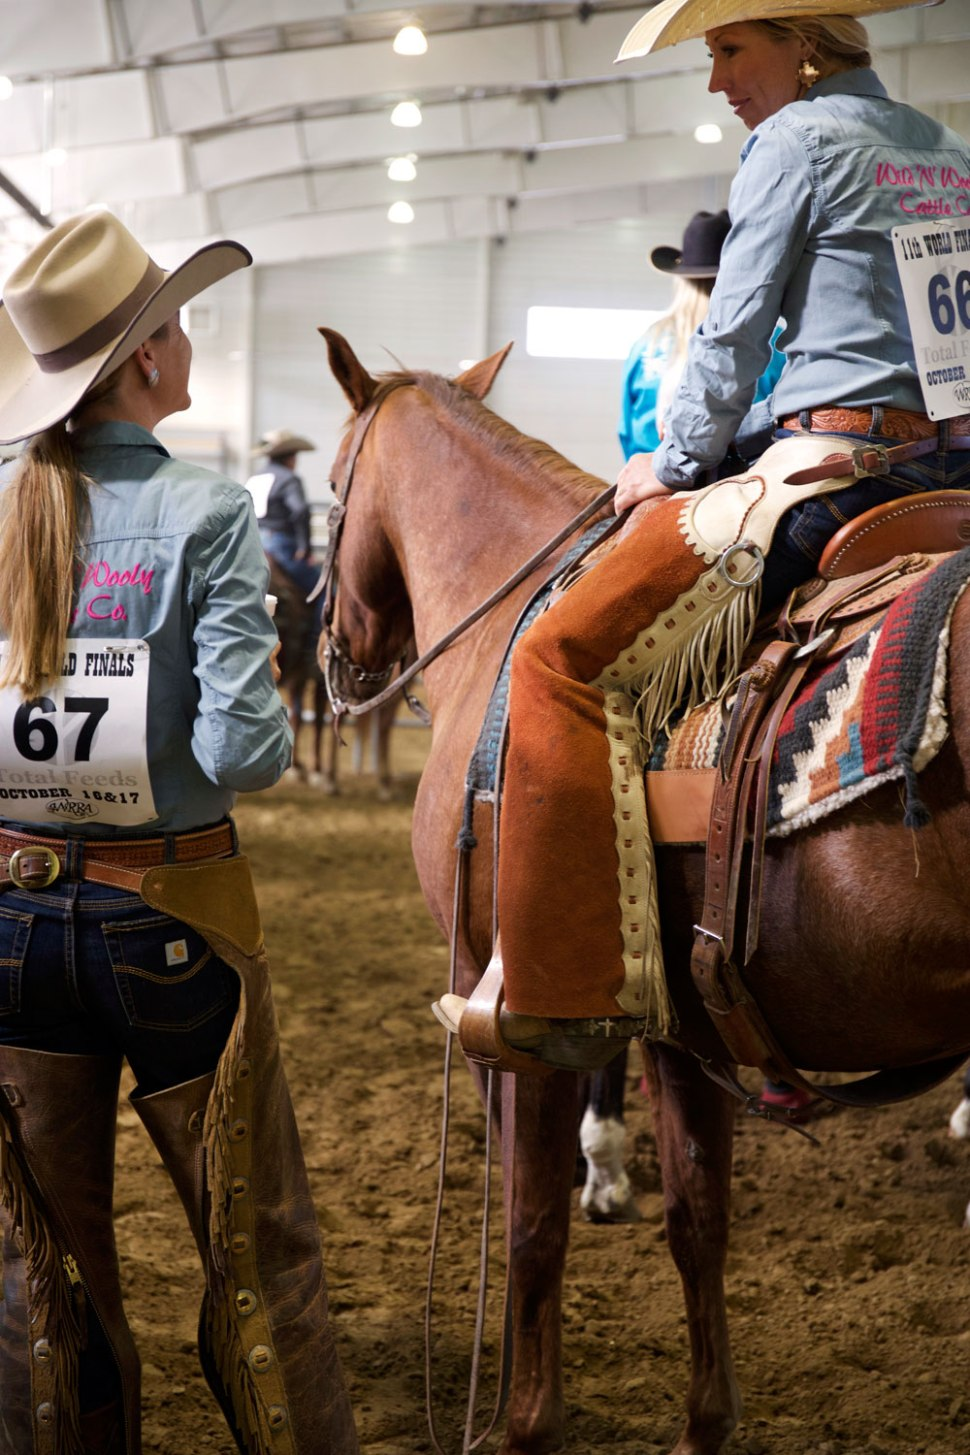 Life Moments at the Rodeo / Crafted in Carhartt